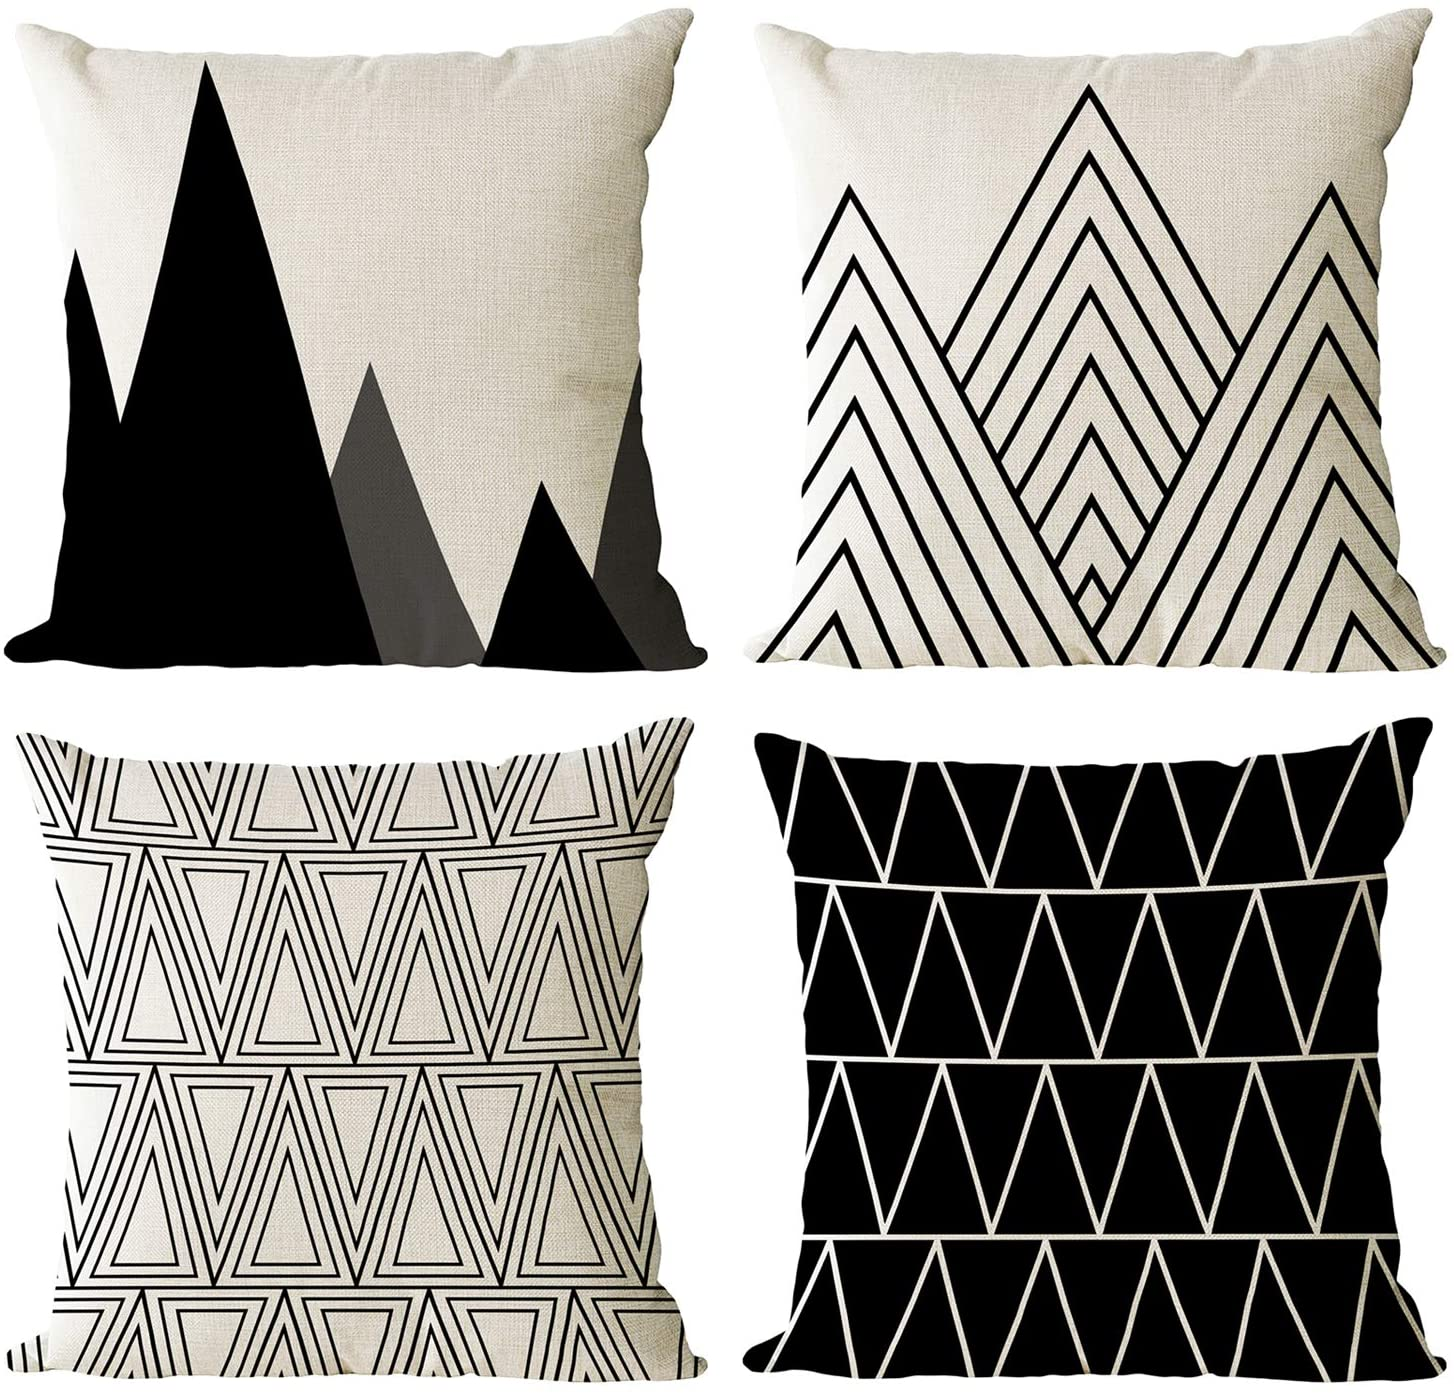 YeeJu Set of 4 Geometric Black and White Decorative Throw Pillow Covers Cotton Linen Square Cushion Covers Outdoor Couch Sofa Home Pillow Cases 22x22 Inch